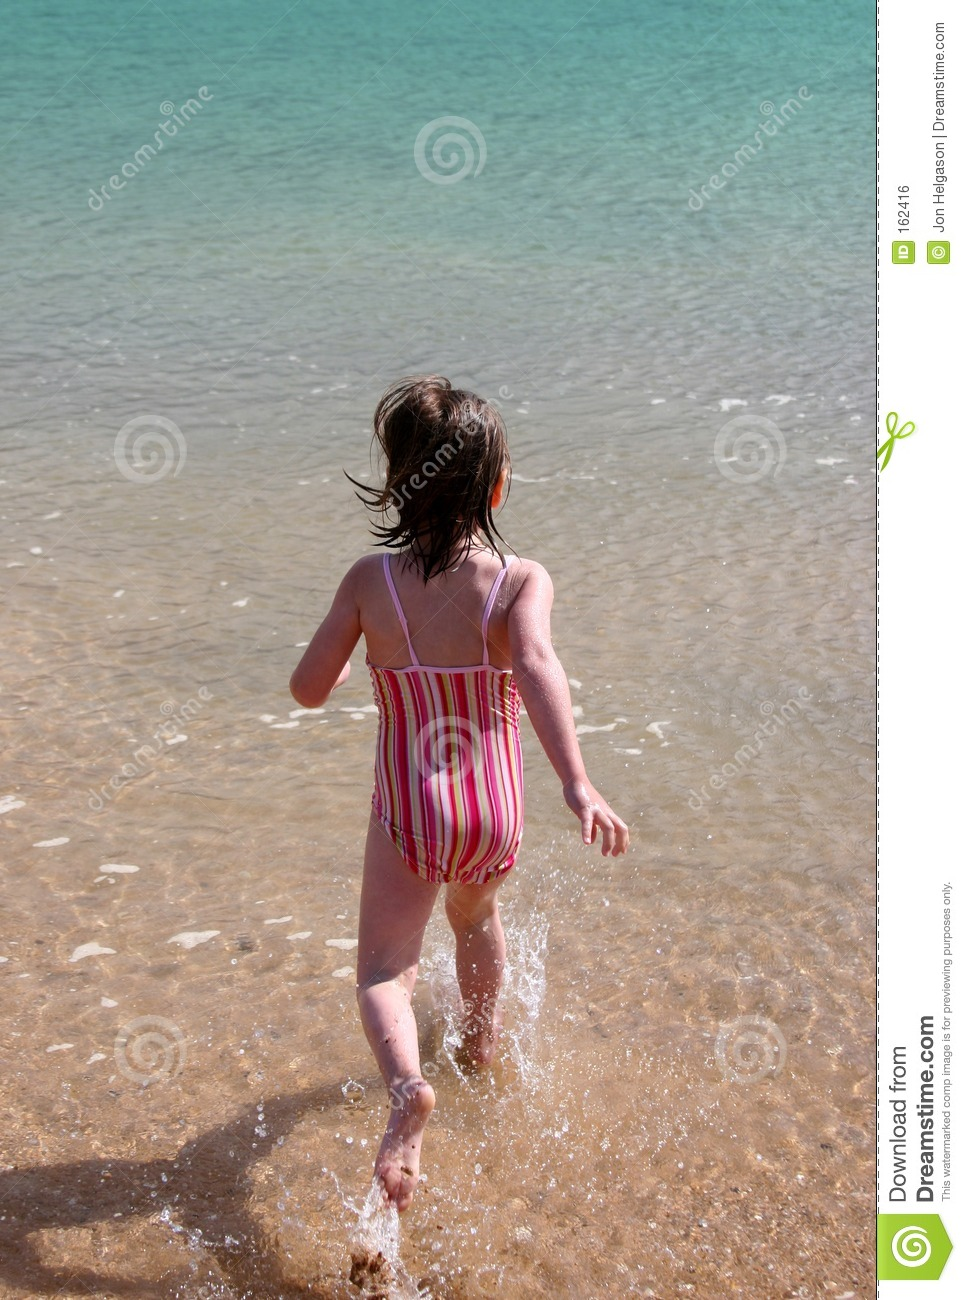 Girl running into the water